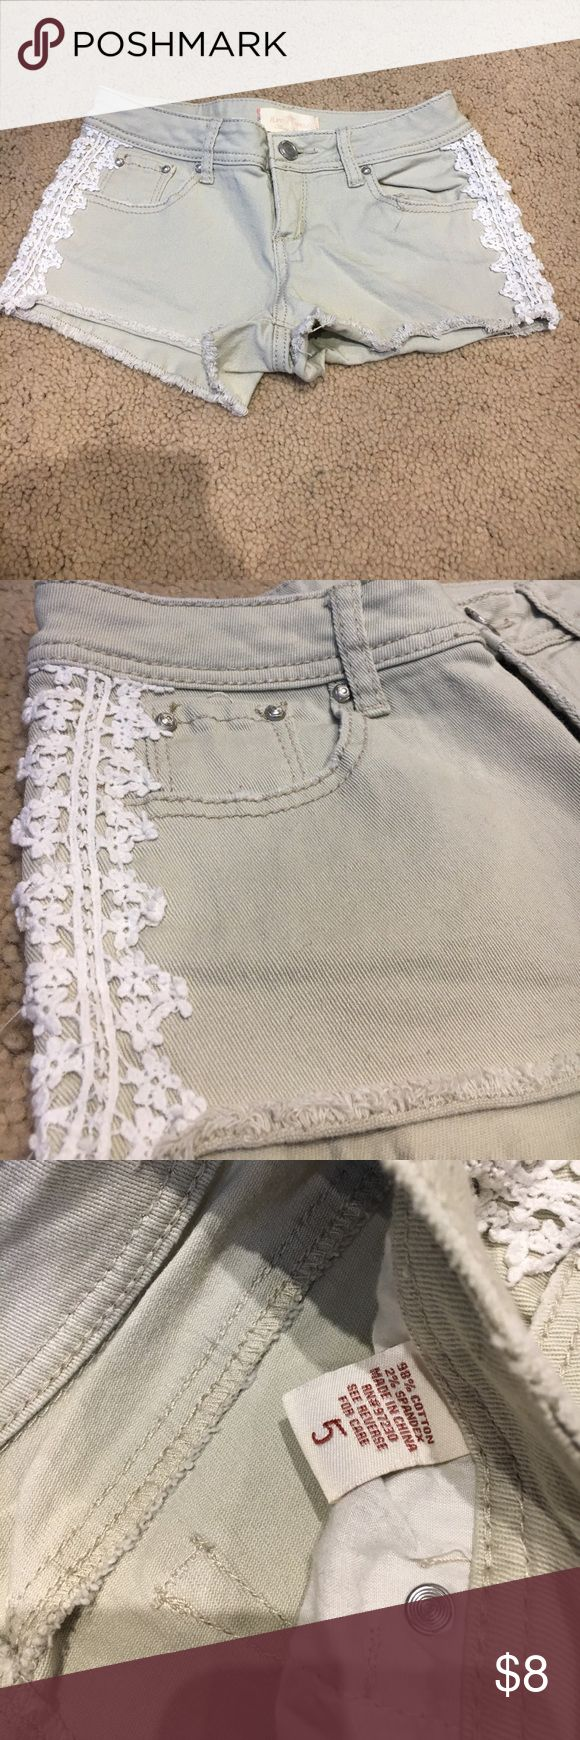 Kaki Jean Shorts Only wore once or twice, kaki jean shorts with a lace design going down the sides. In grear condition. Almost Famous Shorts Jean Shorts